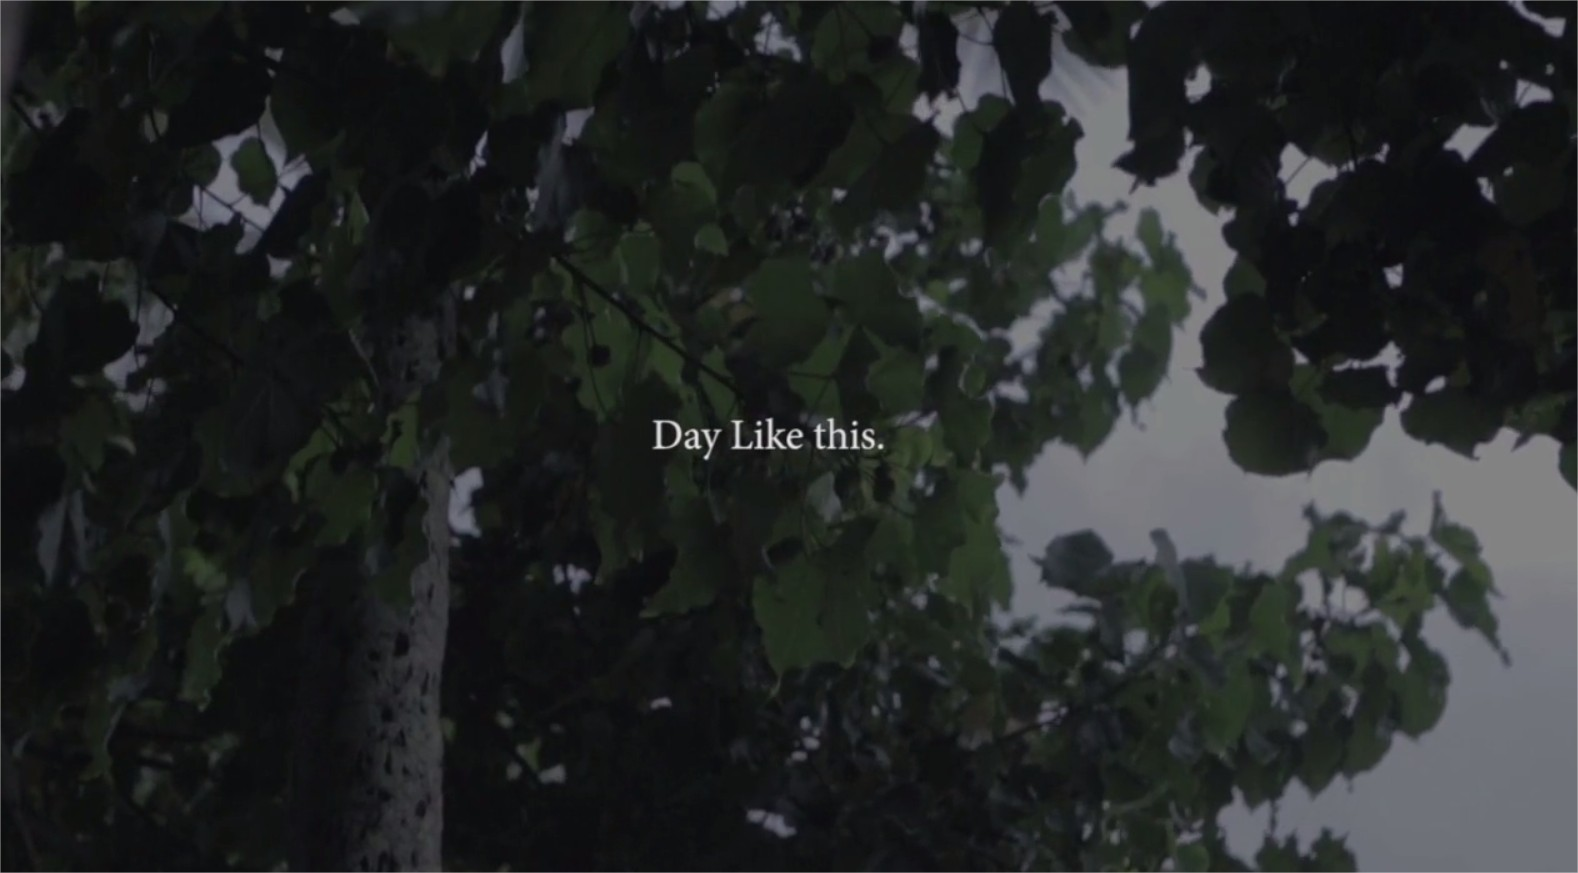 Day Like this - Jamie O ' Brien on Vimeo - Google Chrome